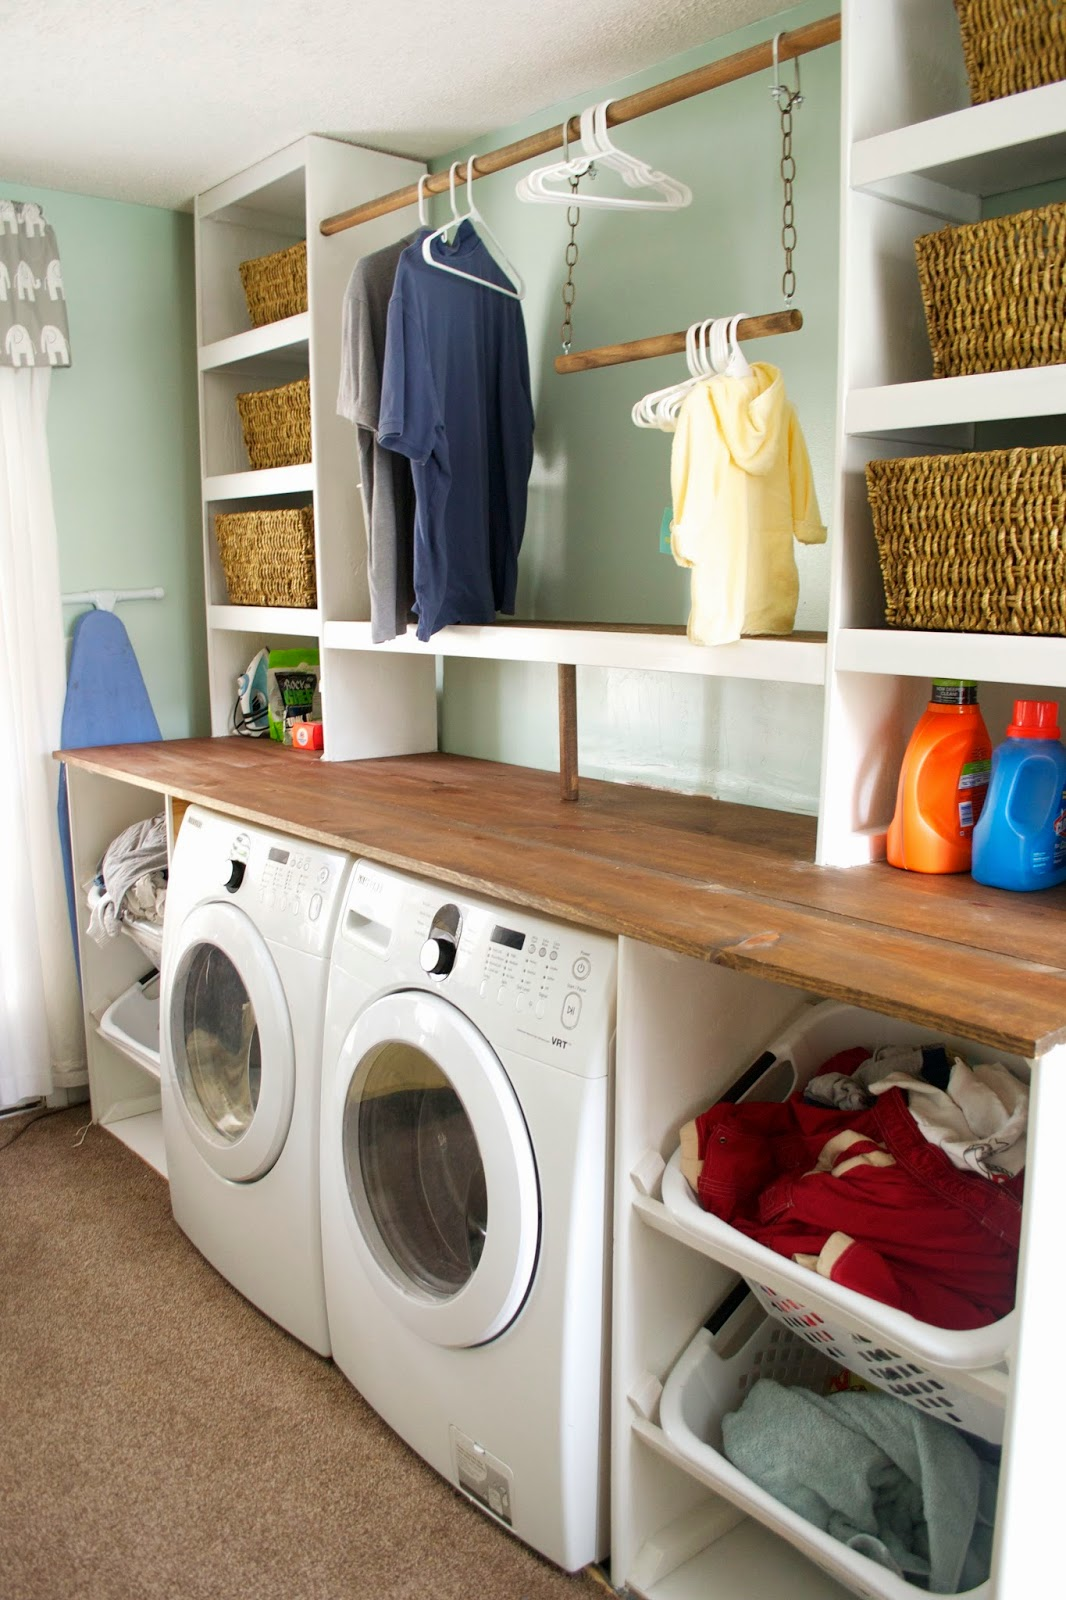 Remodelaholic   Built-in Laundry Unit with Shelving on Laundry Room Shelves Ideas  id=69654